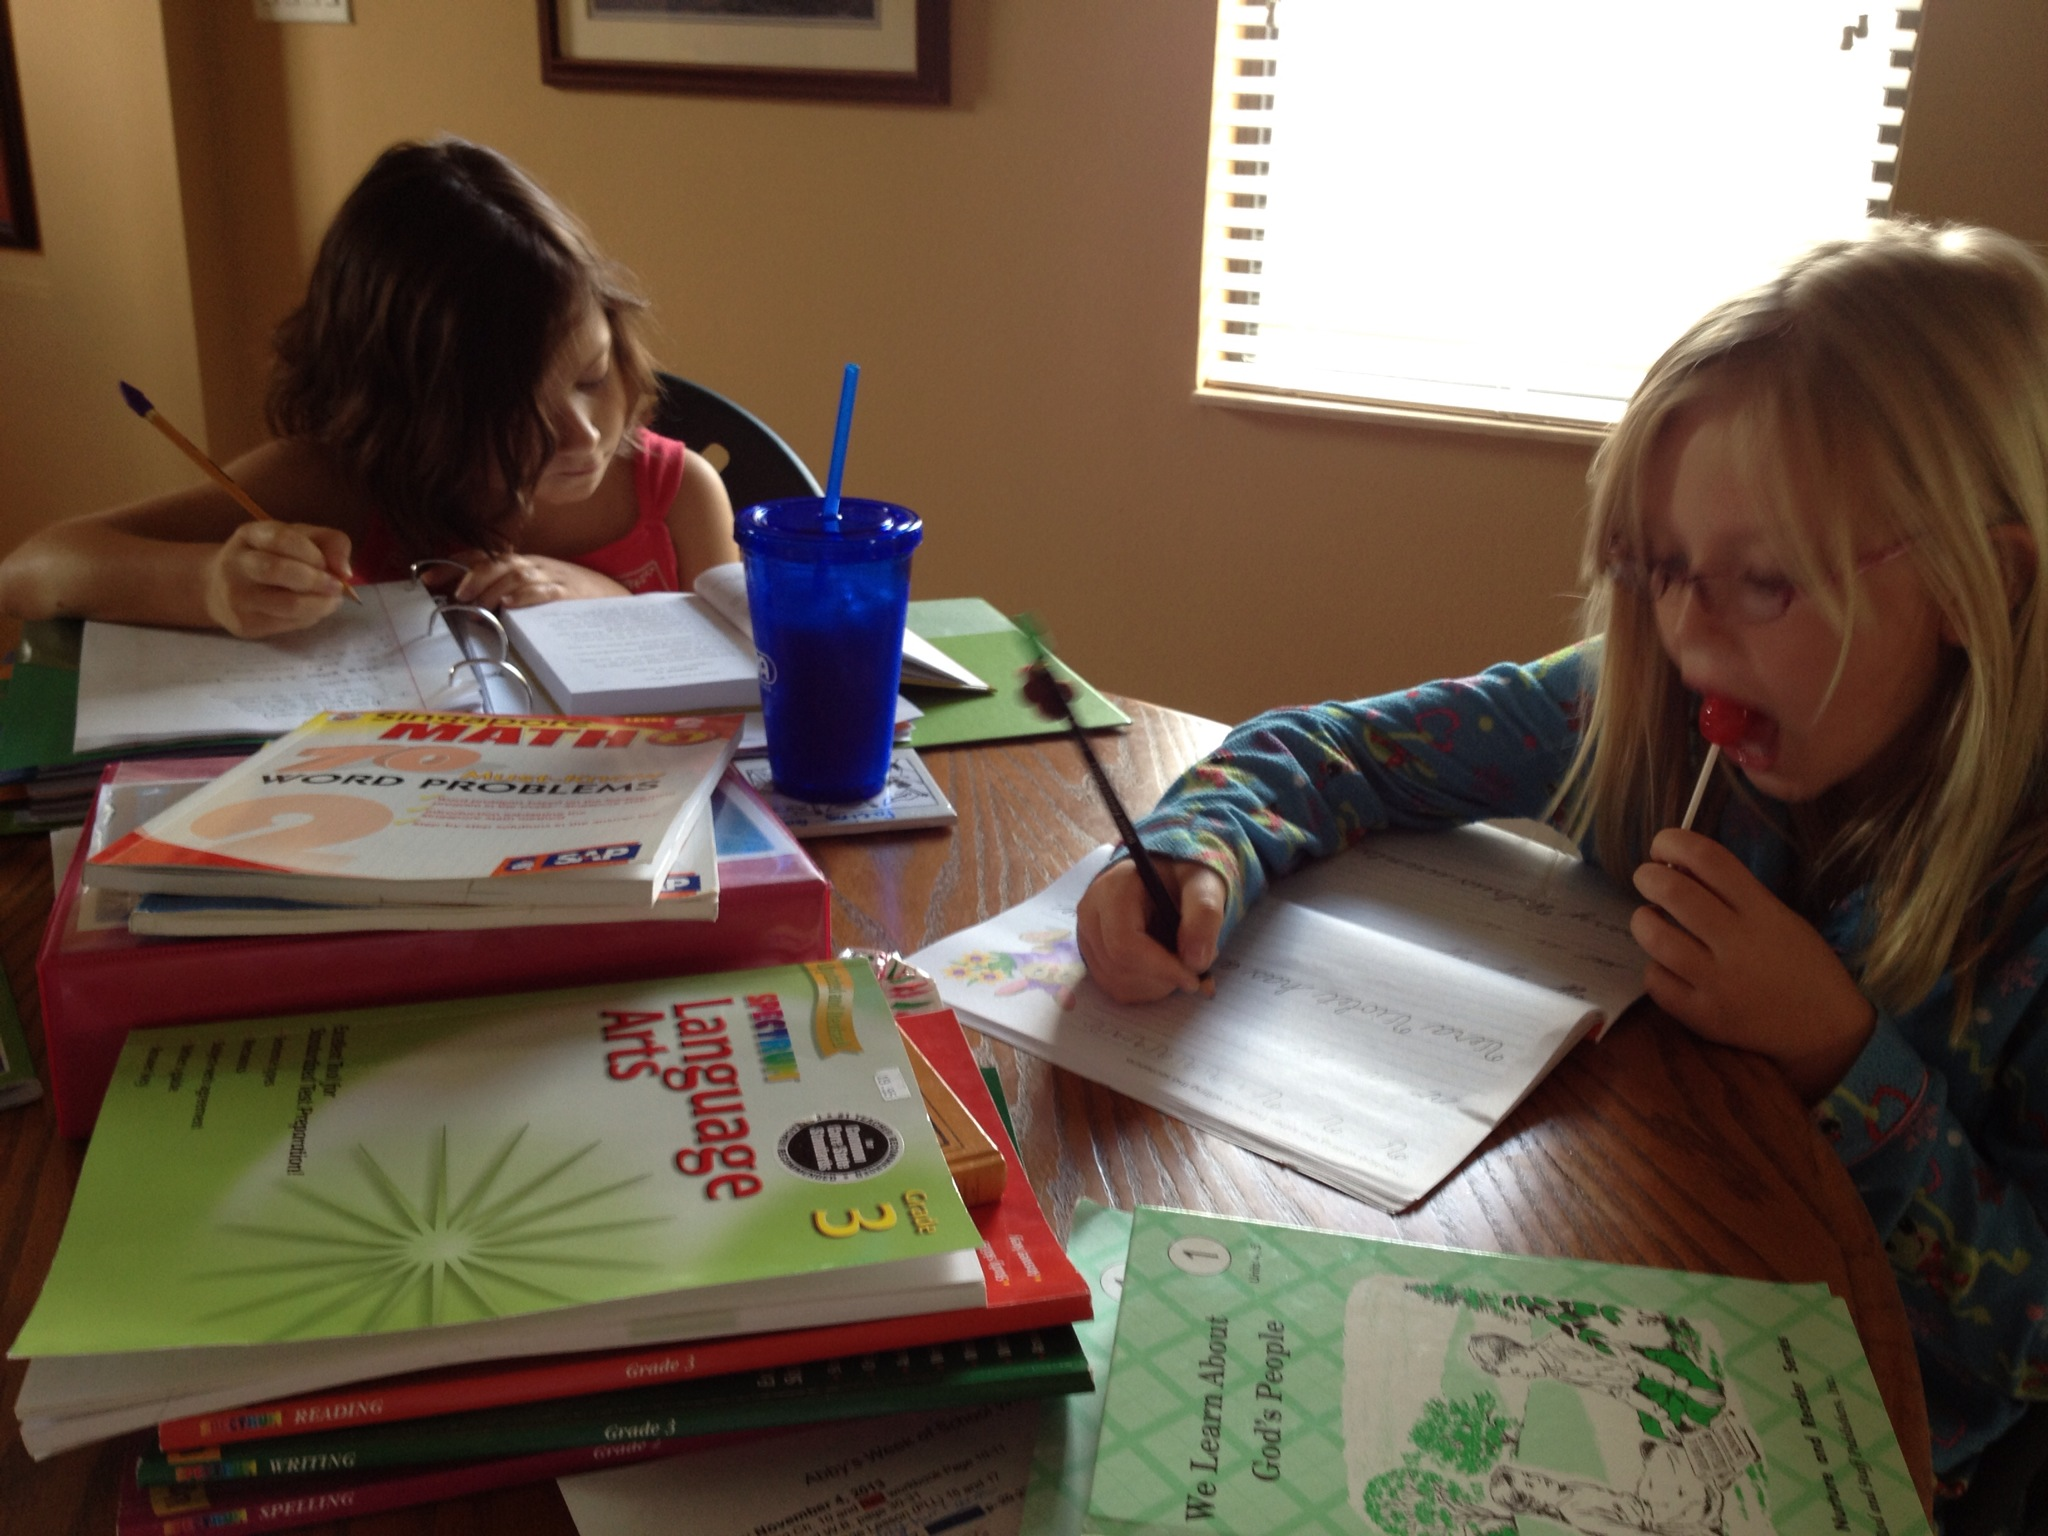 homeschooling and family education